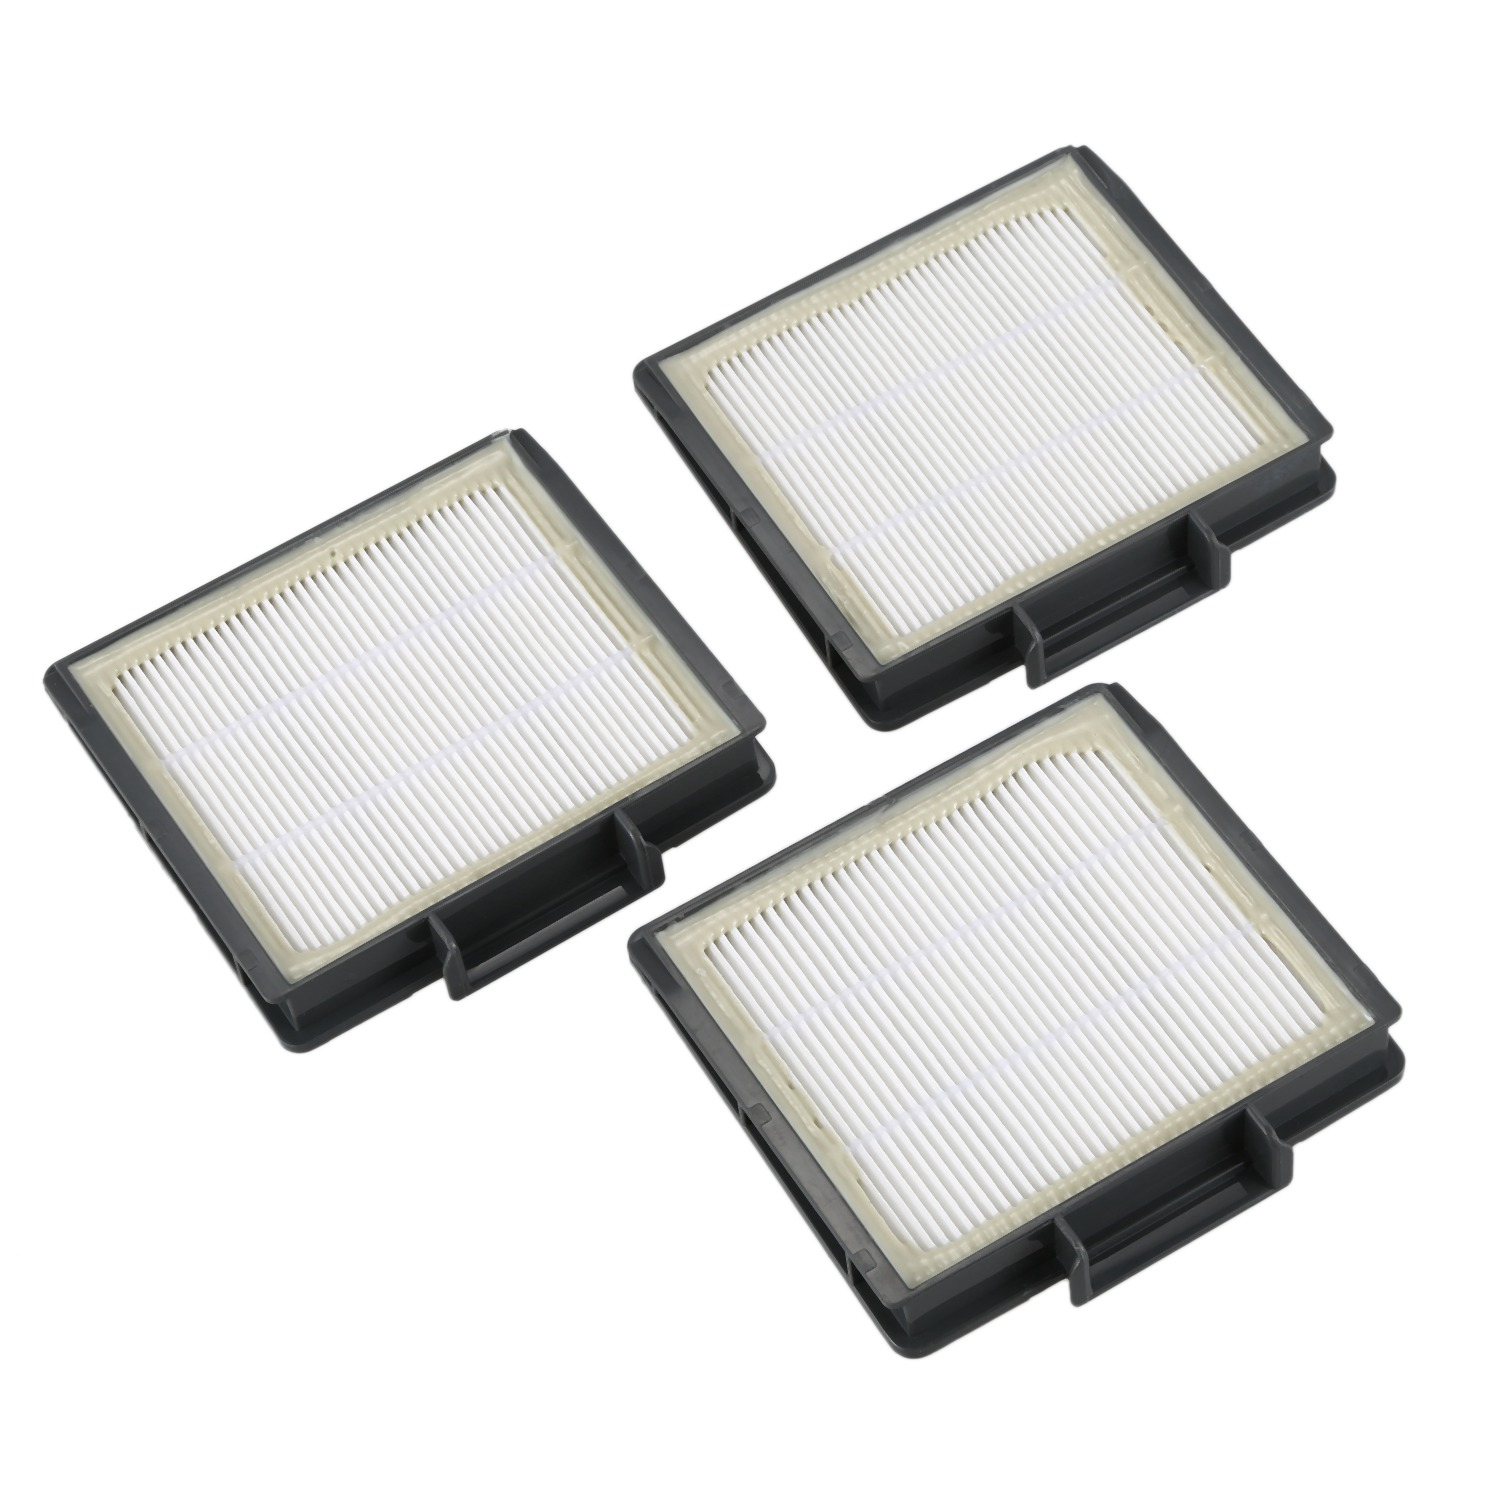 Whyy-3pcs Pre-motor Hepa Filters For Shark Ion Robot Rv700_n Rv720_n Rv850 Rv851wv Rv850brn/wv Vacuum Cleaner Part Fit # Rvffk Top Watermelons Home Appliance Parts Home Appliances